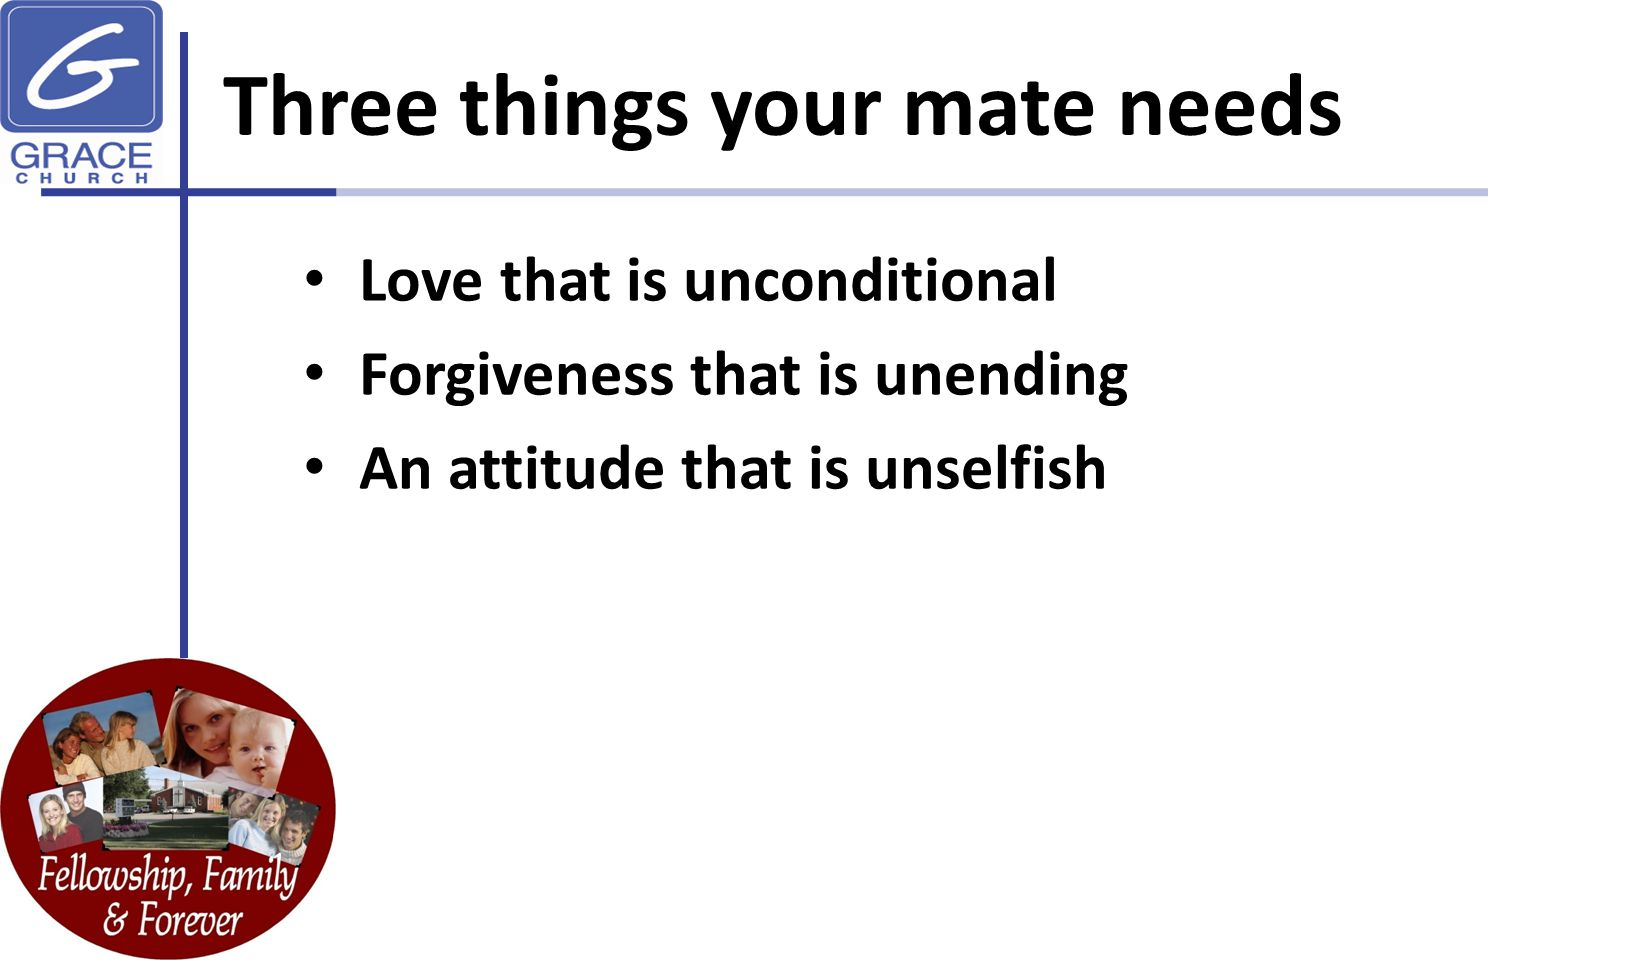 Three things your mate needs Love that is unconditional Forgiveness that is unending An attitude that is unselfish